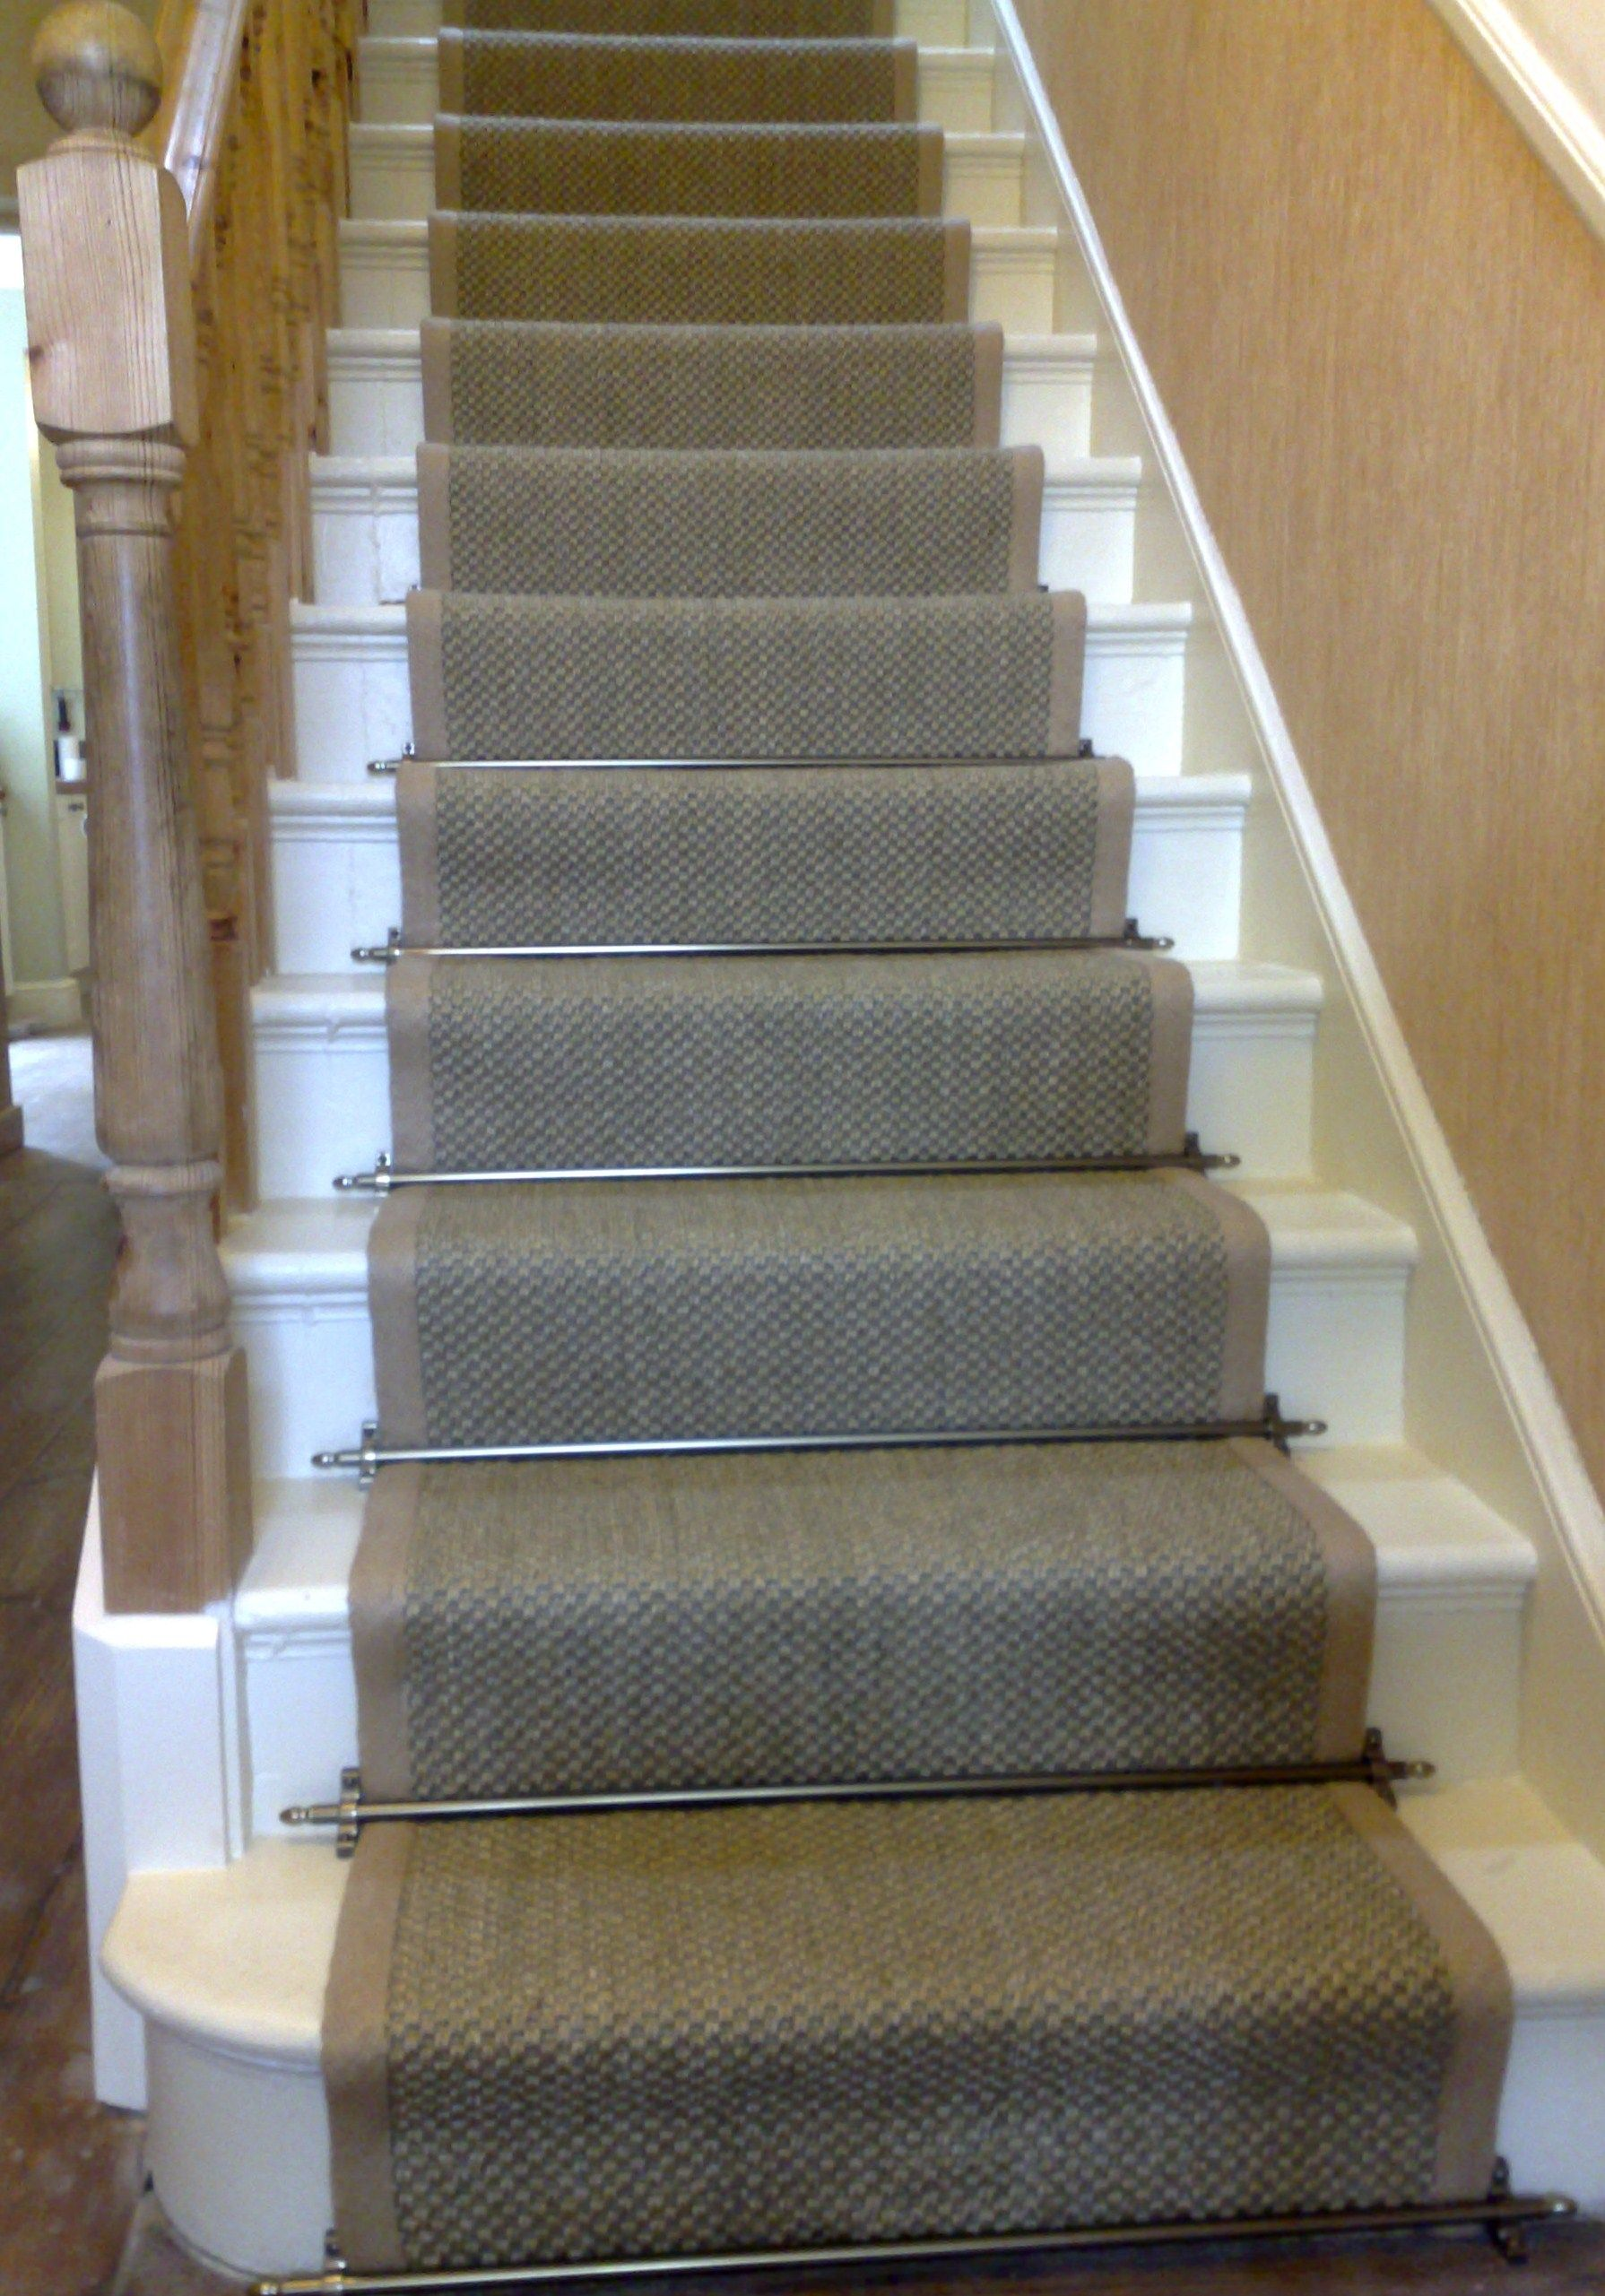 Sisal Stair Runner With Bound Edges The Solid Brass Stairrods Give A Real Wow Factor Stair Runner Carpet Carpet Stairs Hallway Carpet Runners